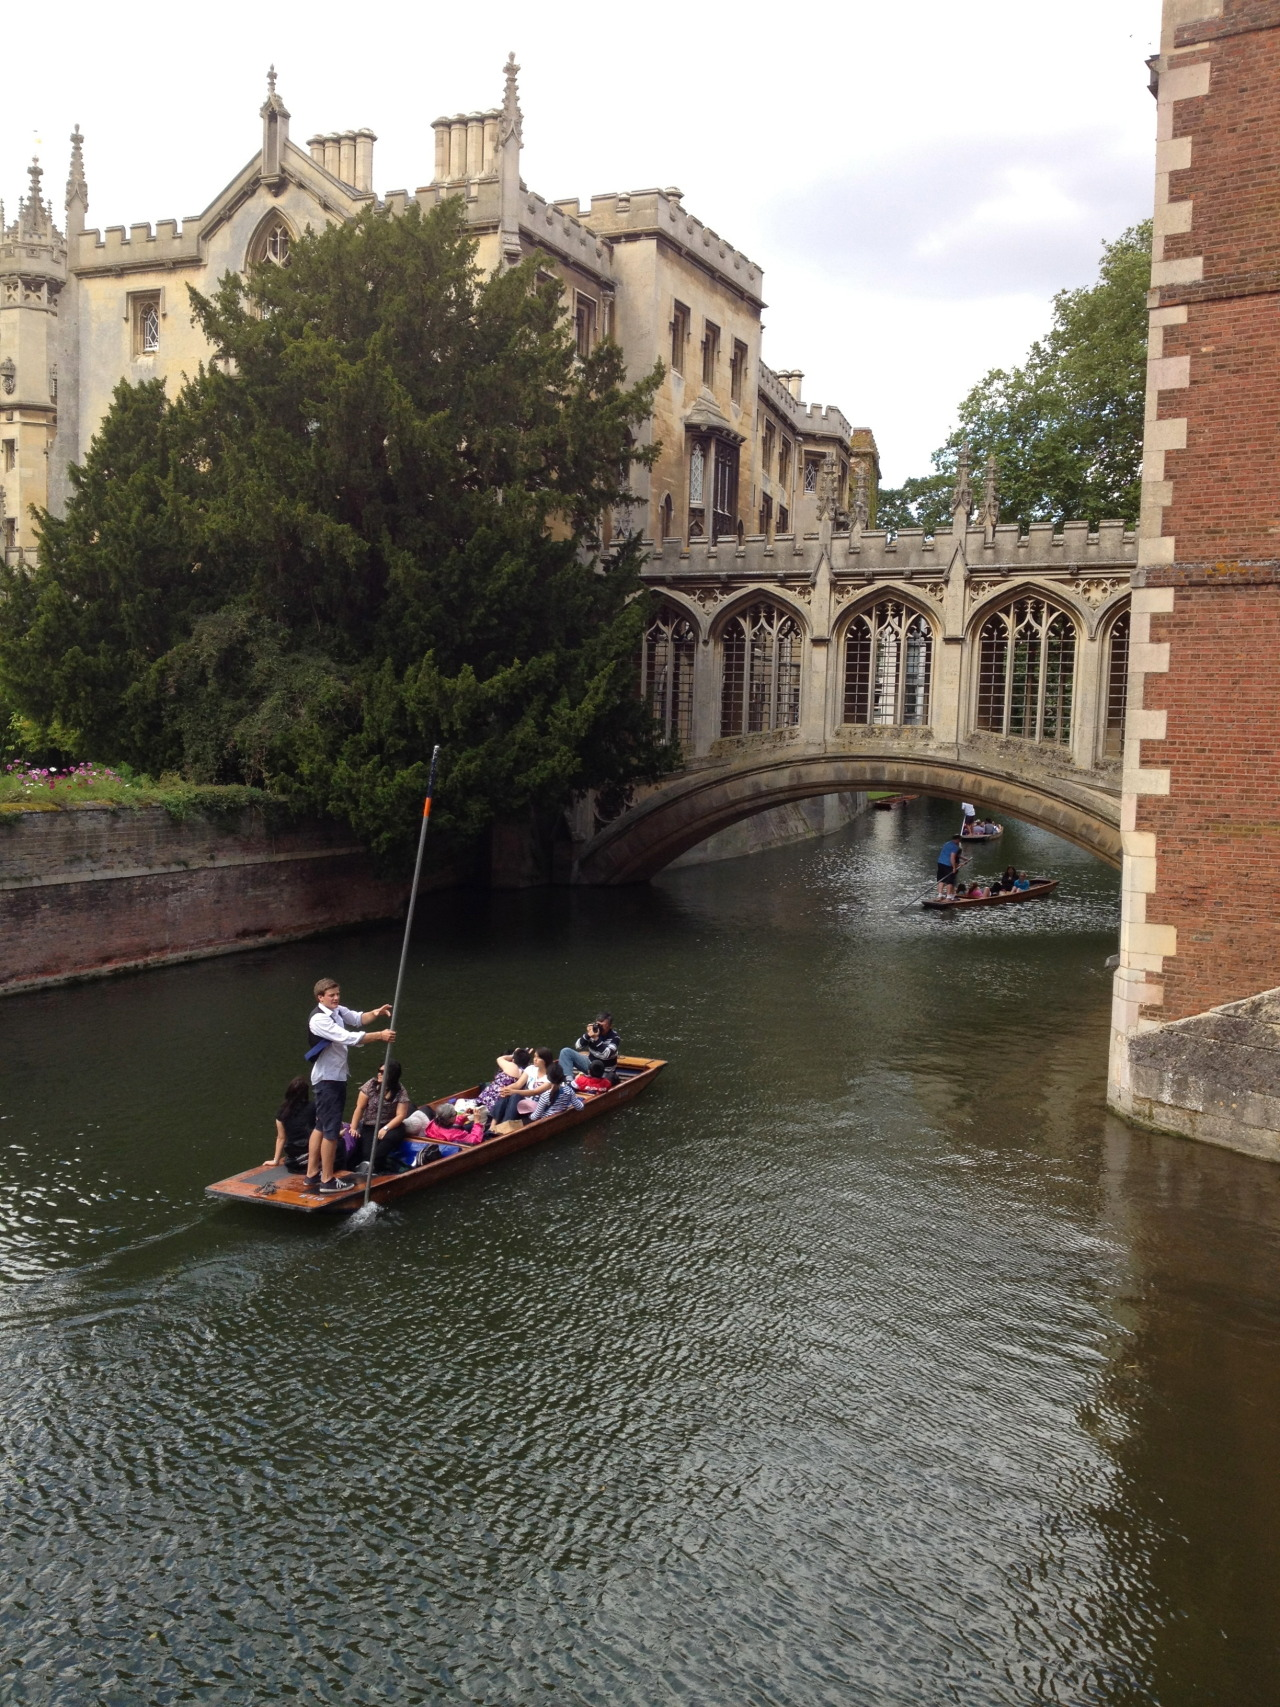 Punters on the river, Cambridge, UK.